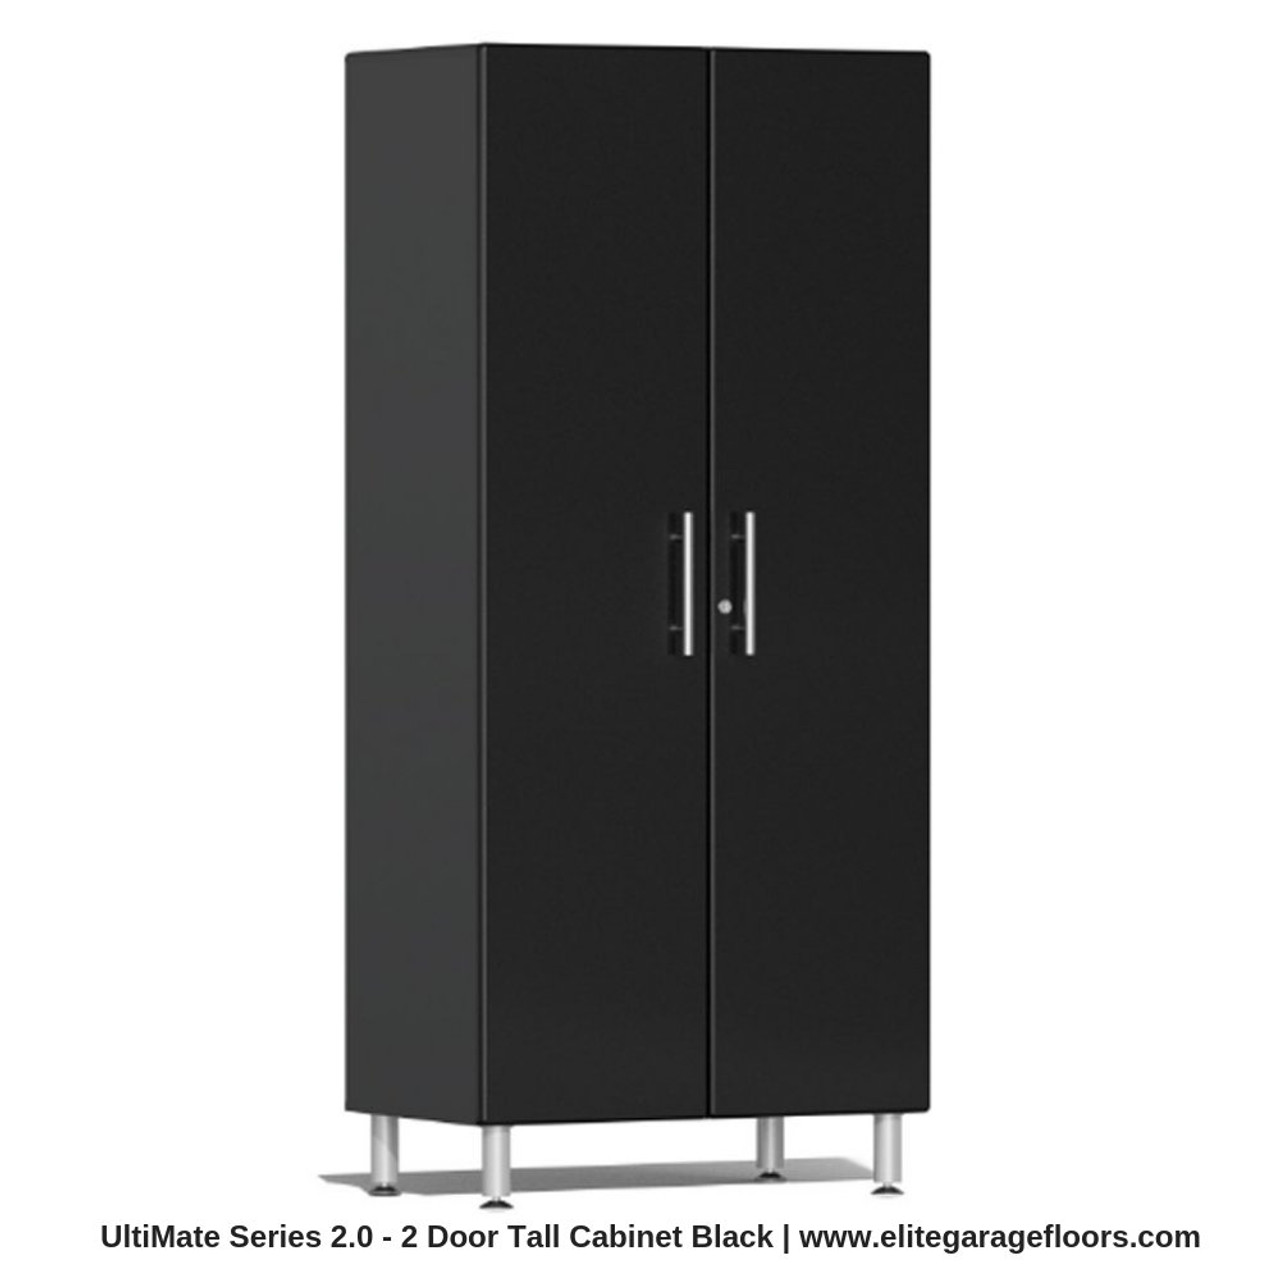 Ulti Mate Garage 2 Series 2 Door Tall Cabinet Garage Storage Cabinet